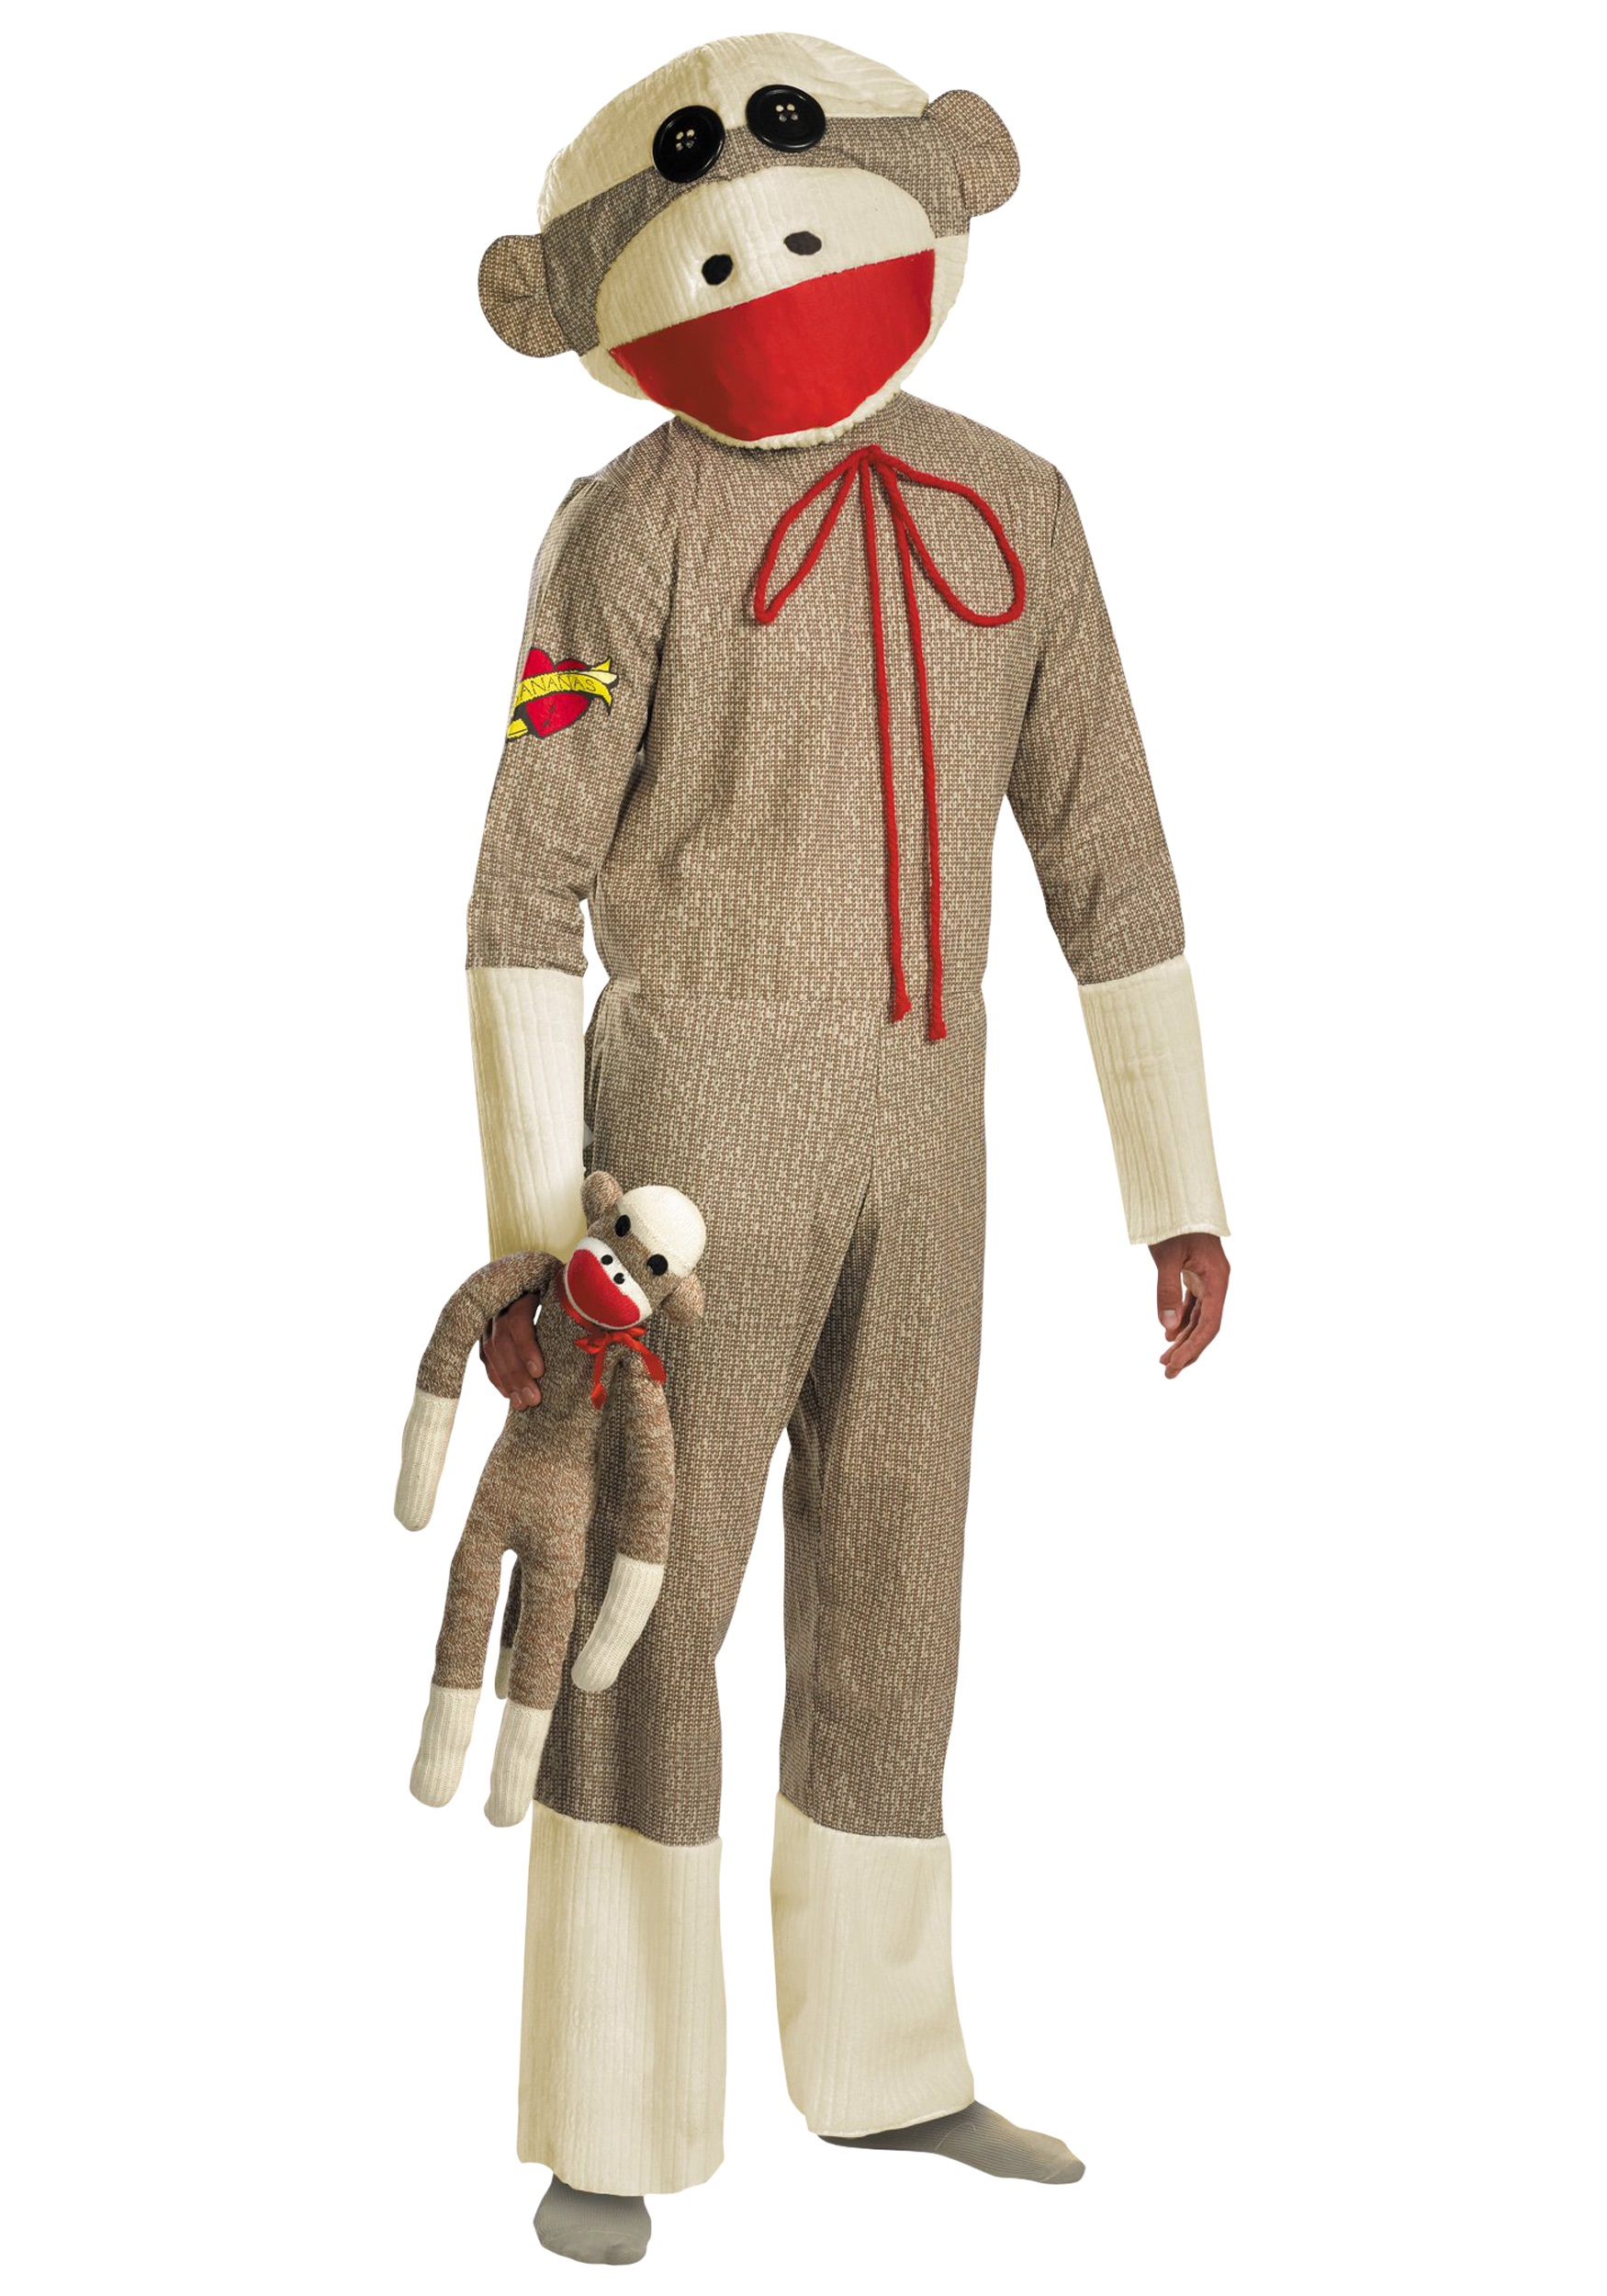 Giant Sock Monkey Costume  sc 1 st  Halloween Costume & Giant Sock Monkey Costume - Funny Adult Stuffed Animal Costumes